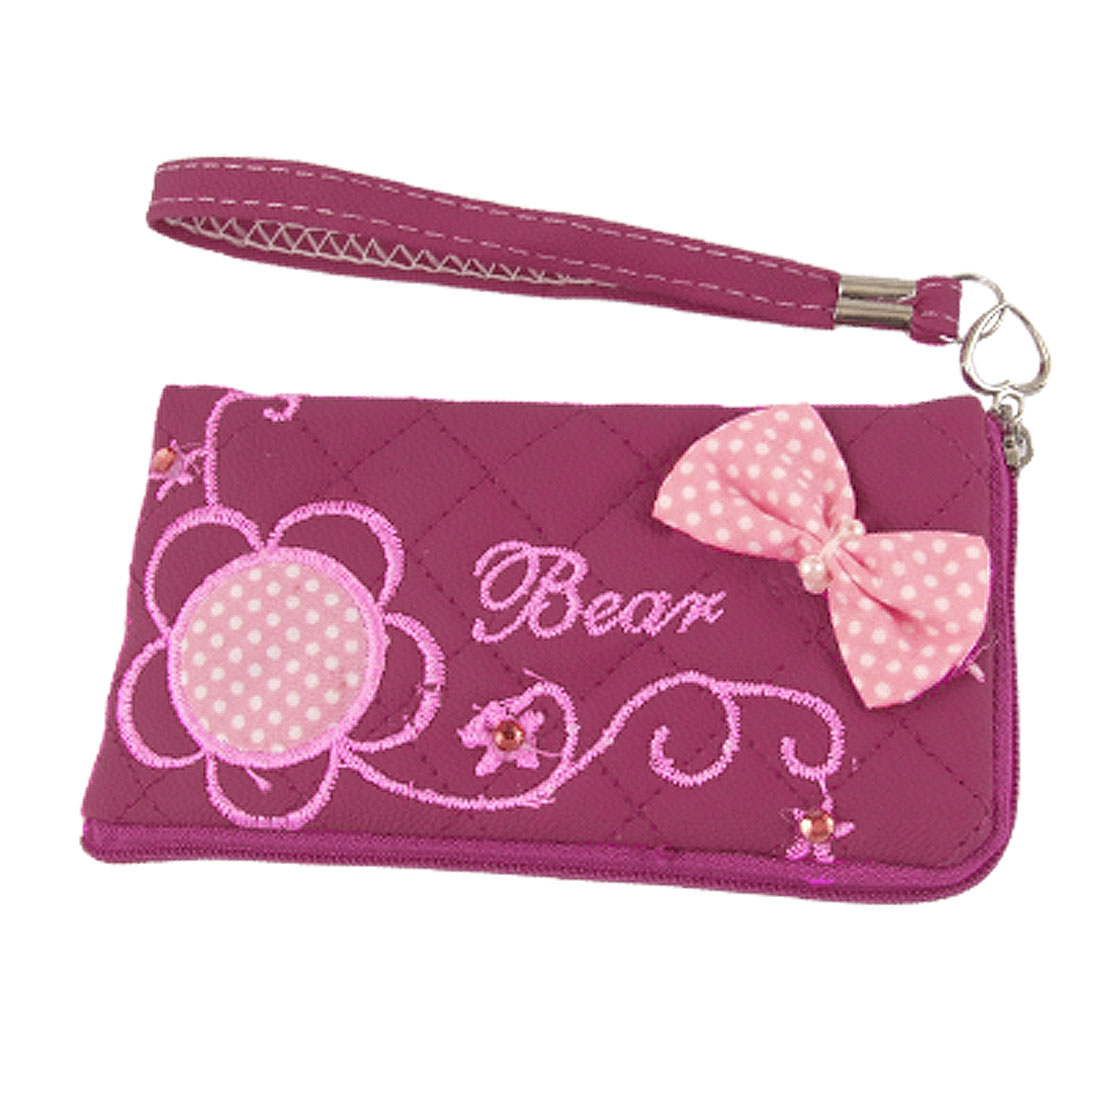 Embroidered Faux Leather L Shape Zipper Pouch Fuchsia for Phone